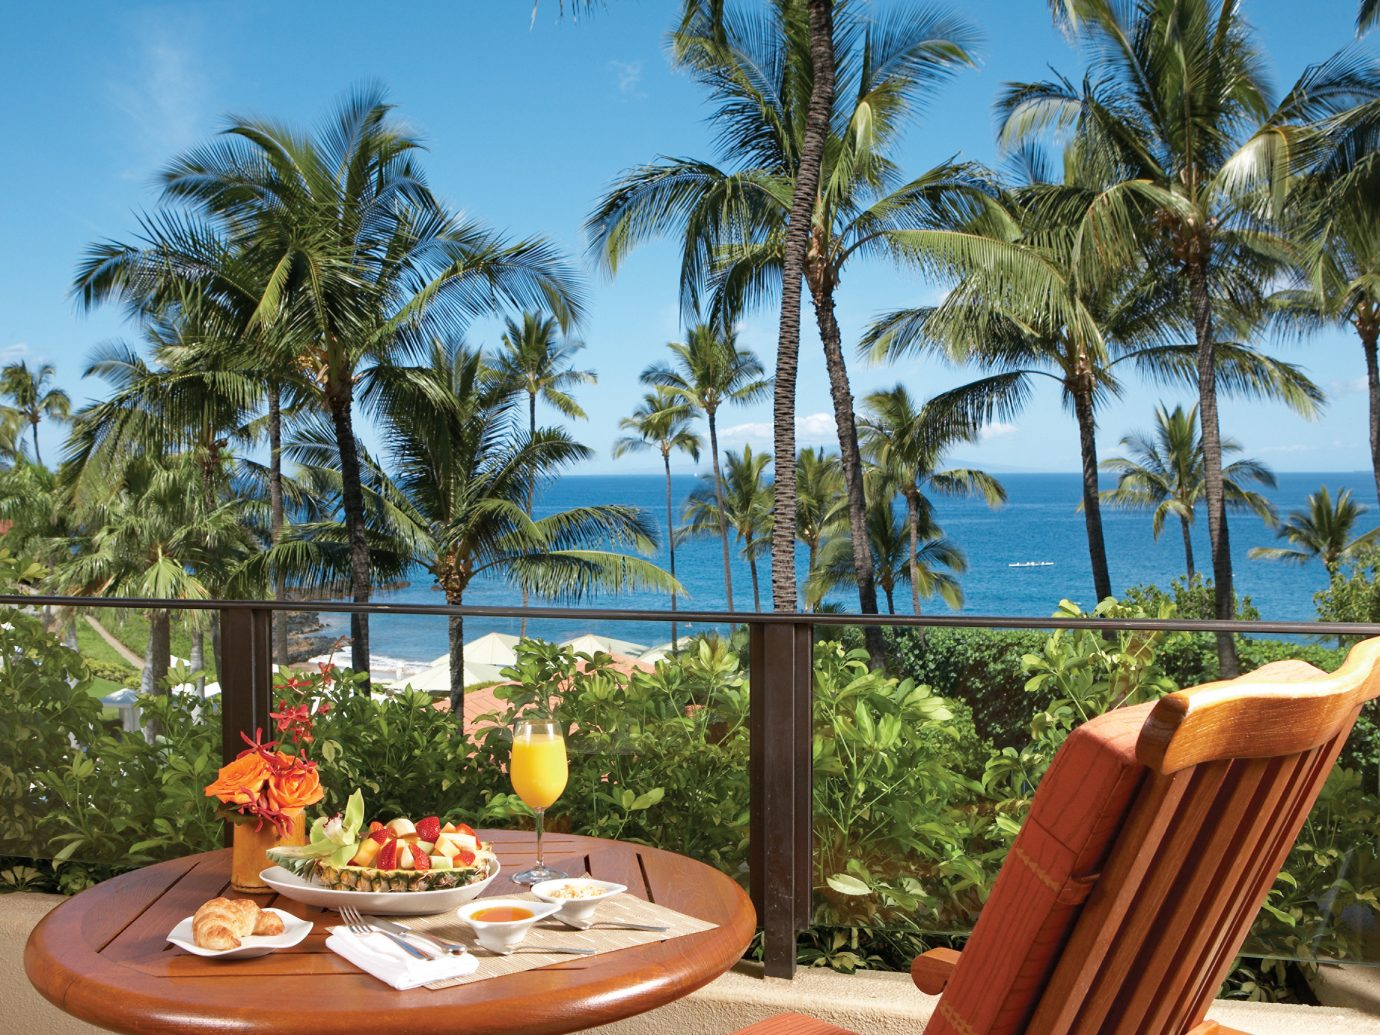 Balcony Hotels Island Lounge Patio Romance Scenic views Terrace Tropical tree outdoor sky property Resort vacation caribbean plant estate arecales palm home Villa Beach palm family real estate swimming pool tropics area furniture